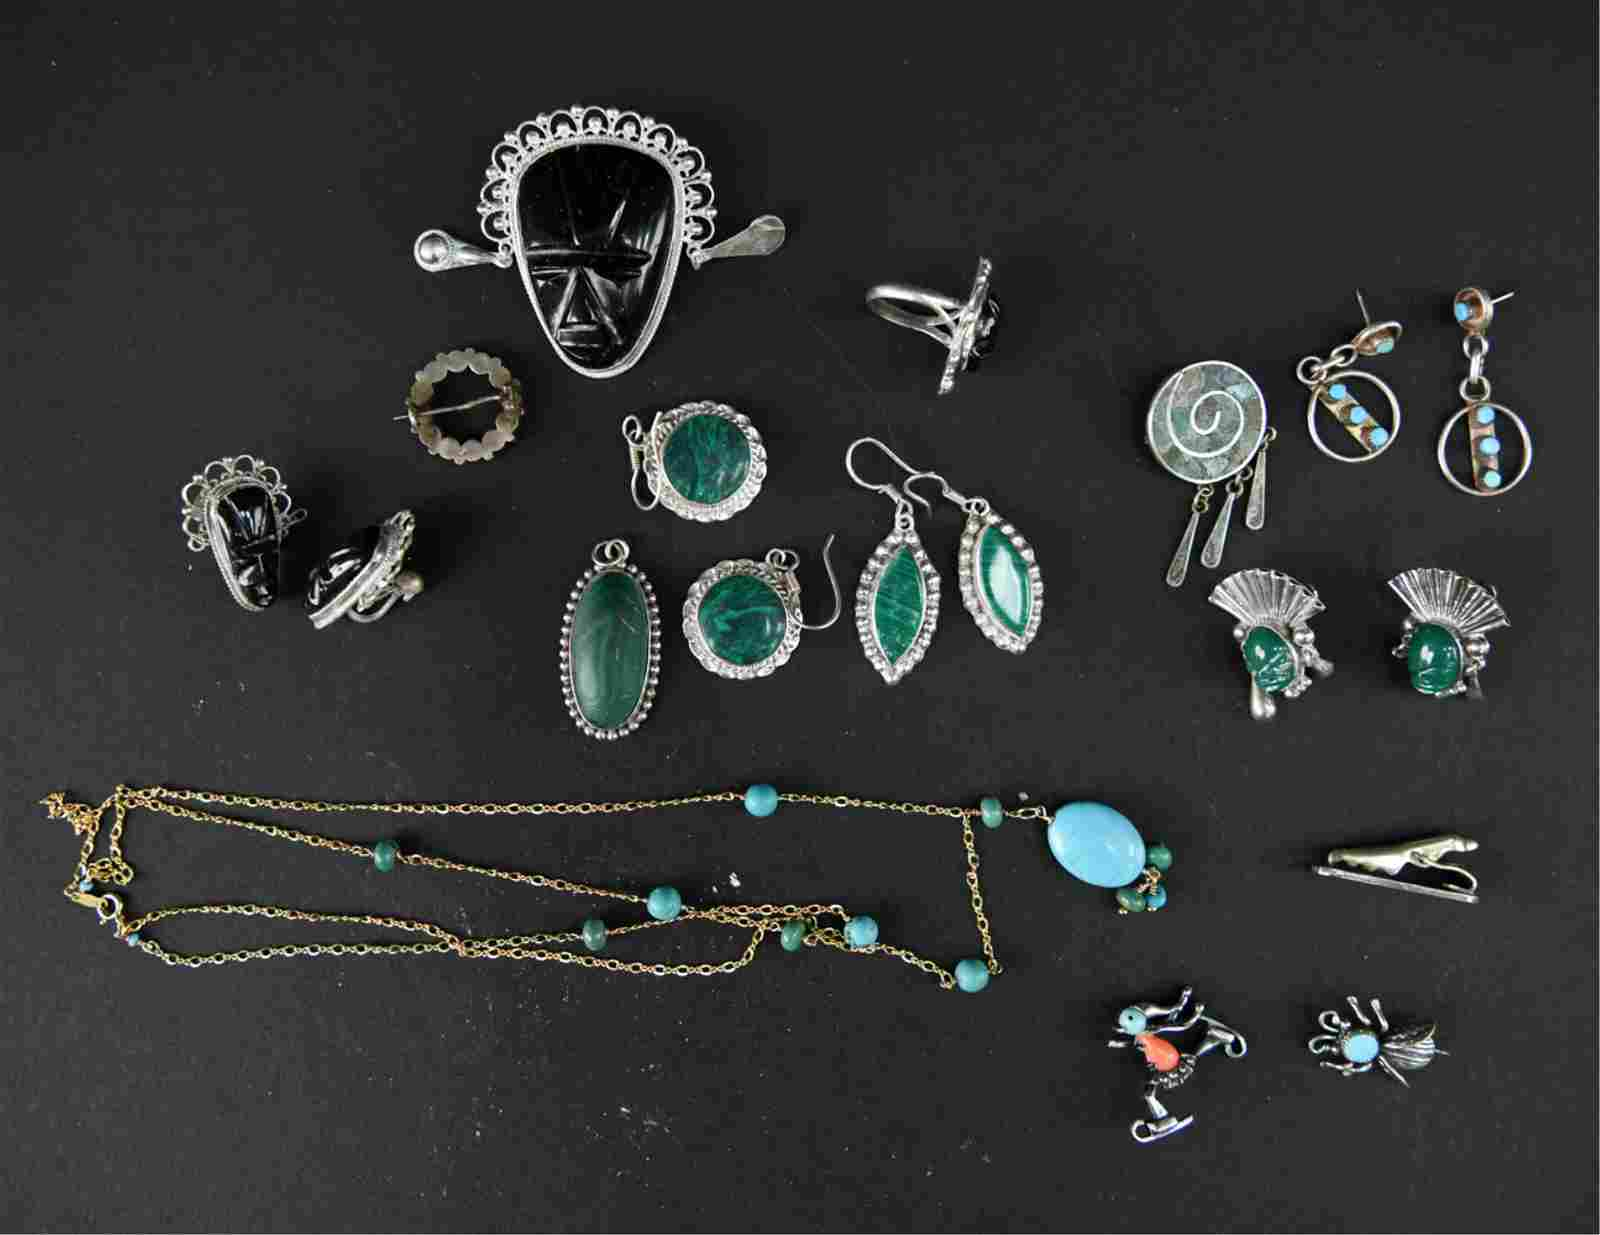 STERLING SILVER & STONE JEWELRY GROUPING